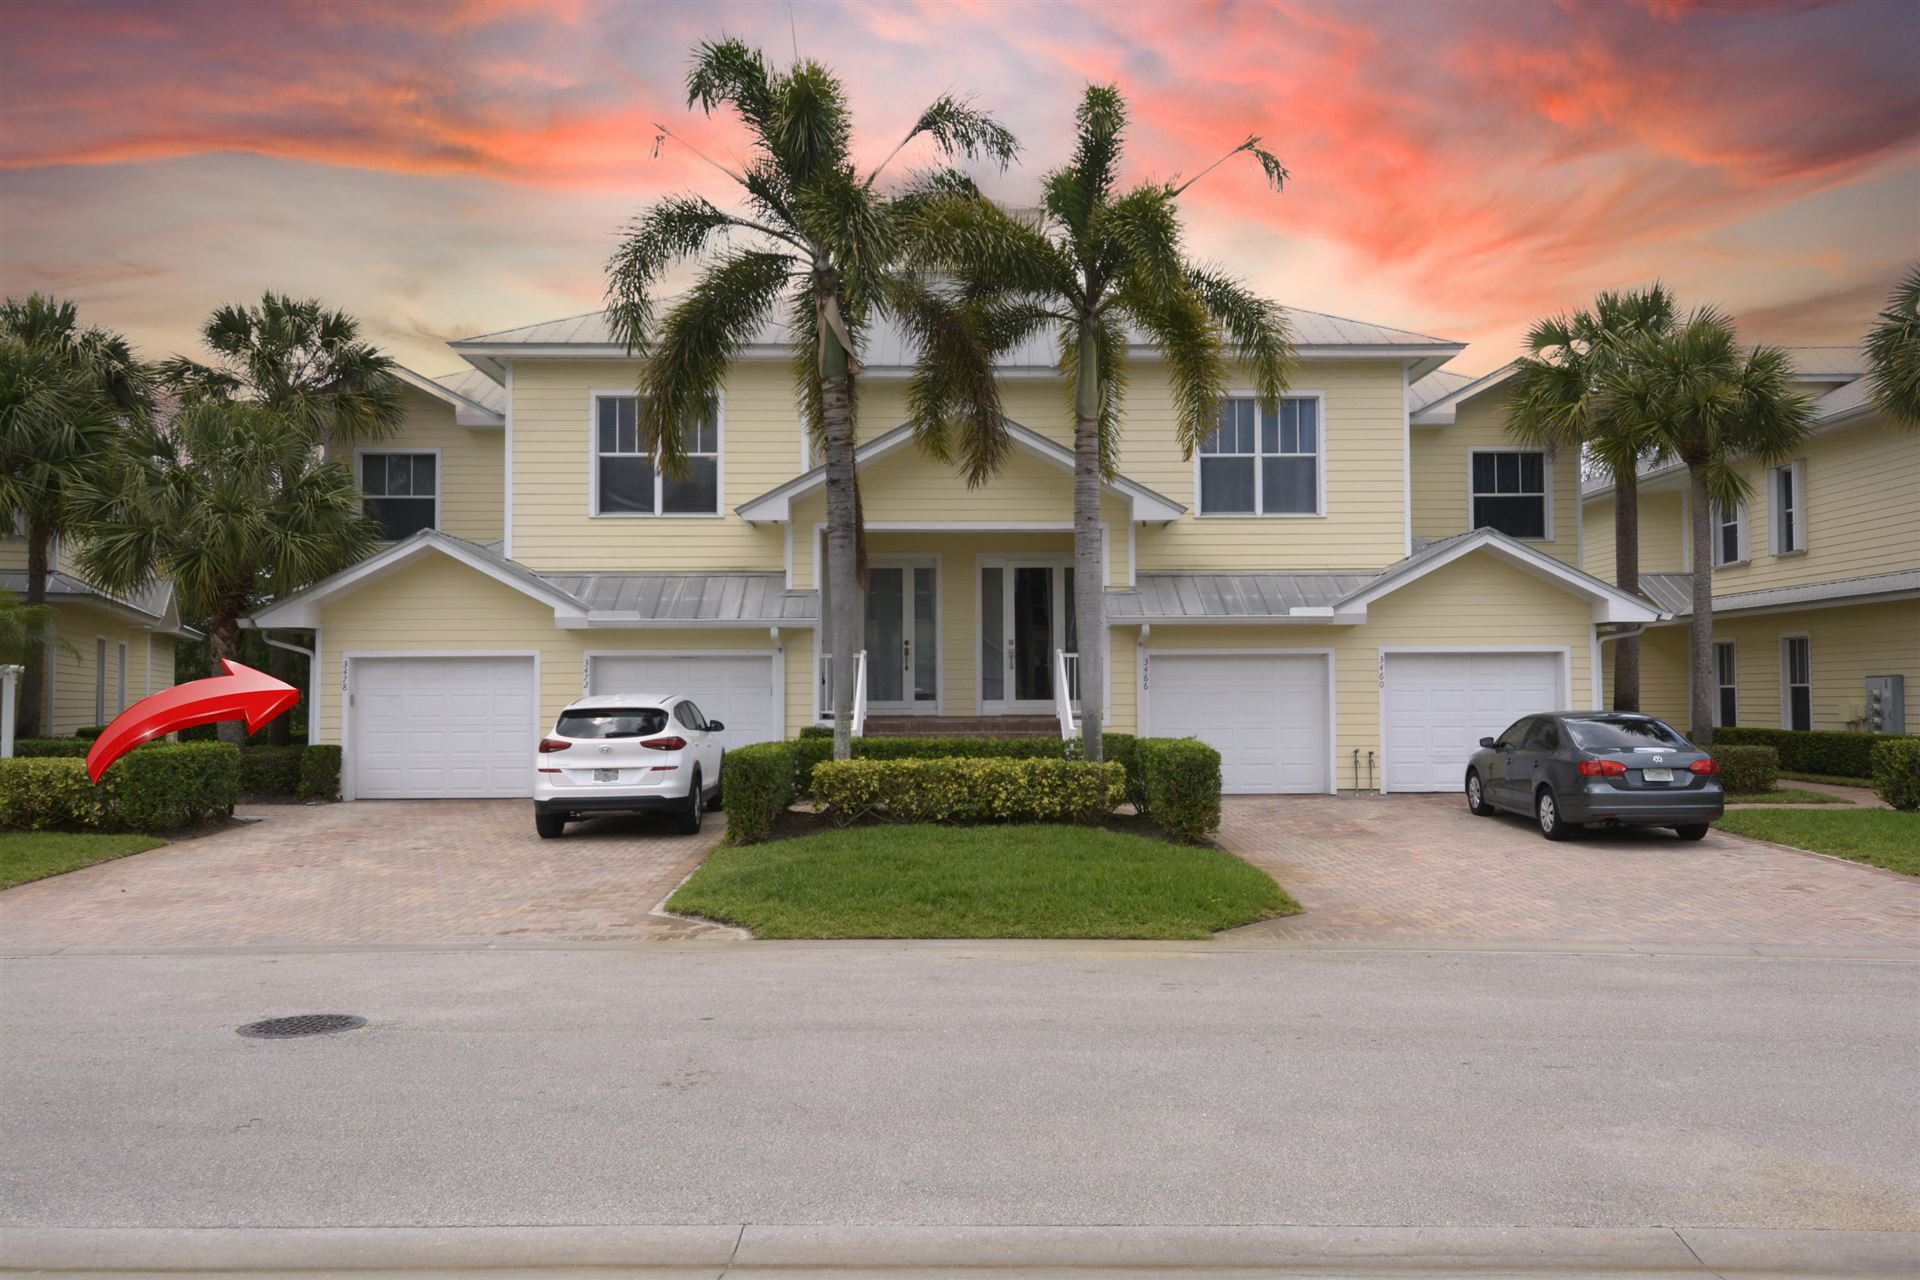 3478 SW Sawgrass Villas Drive #7a, Palm City, FL 34990 - #: RX-10707422